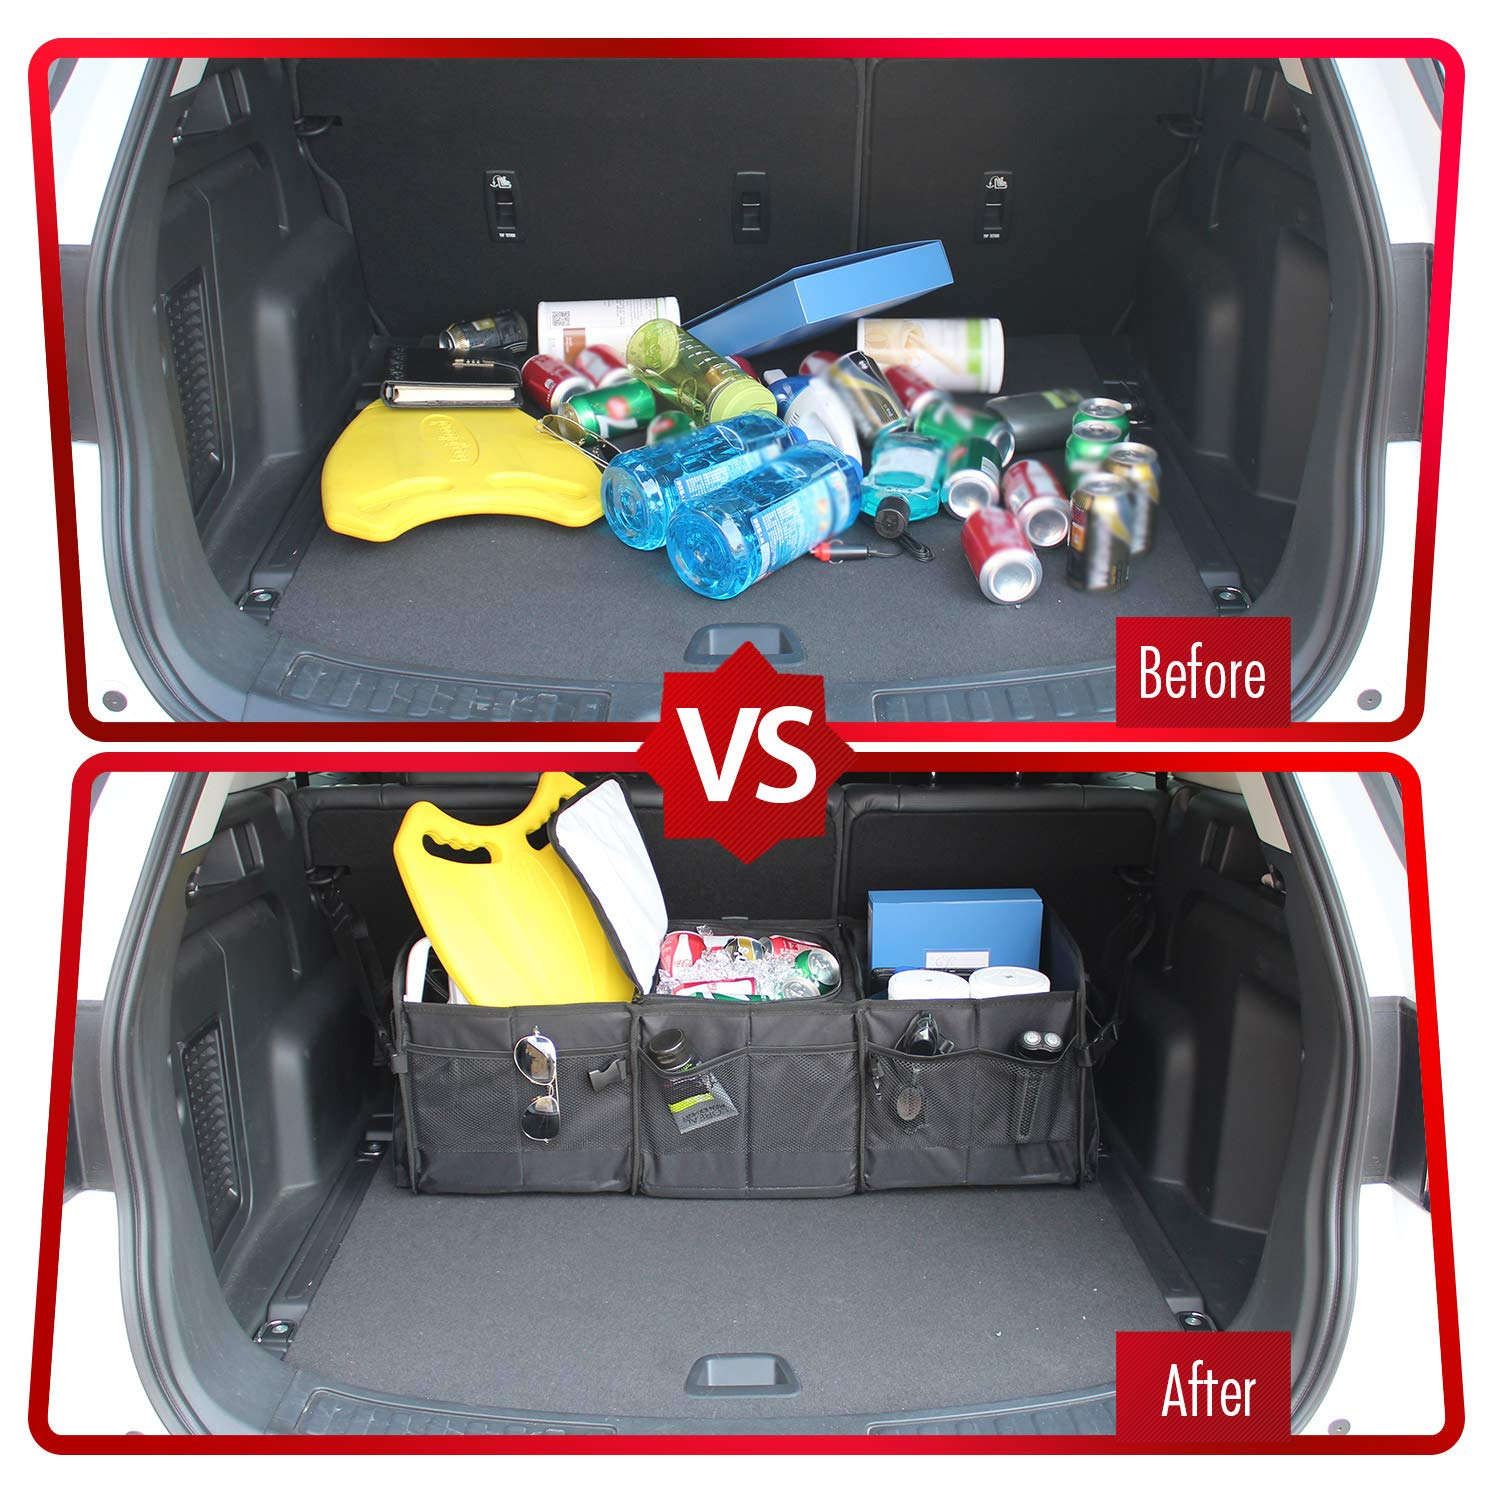 GEEDAR Trunk Organizer with Cooler Large Trunk Organizer with Built-in Leak-Proof Cooler Bag for SUV Toyota Hyundai Mazda KIA Subaru Accessories